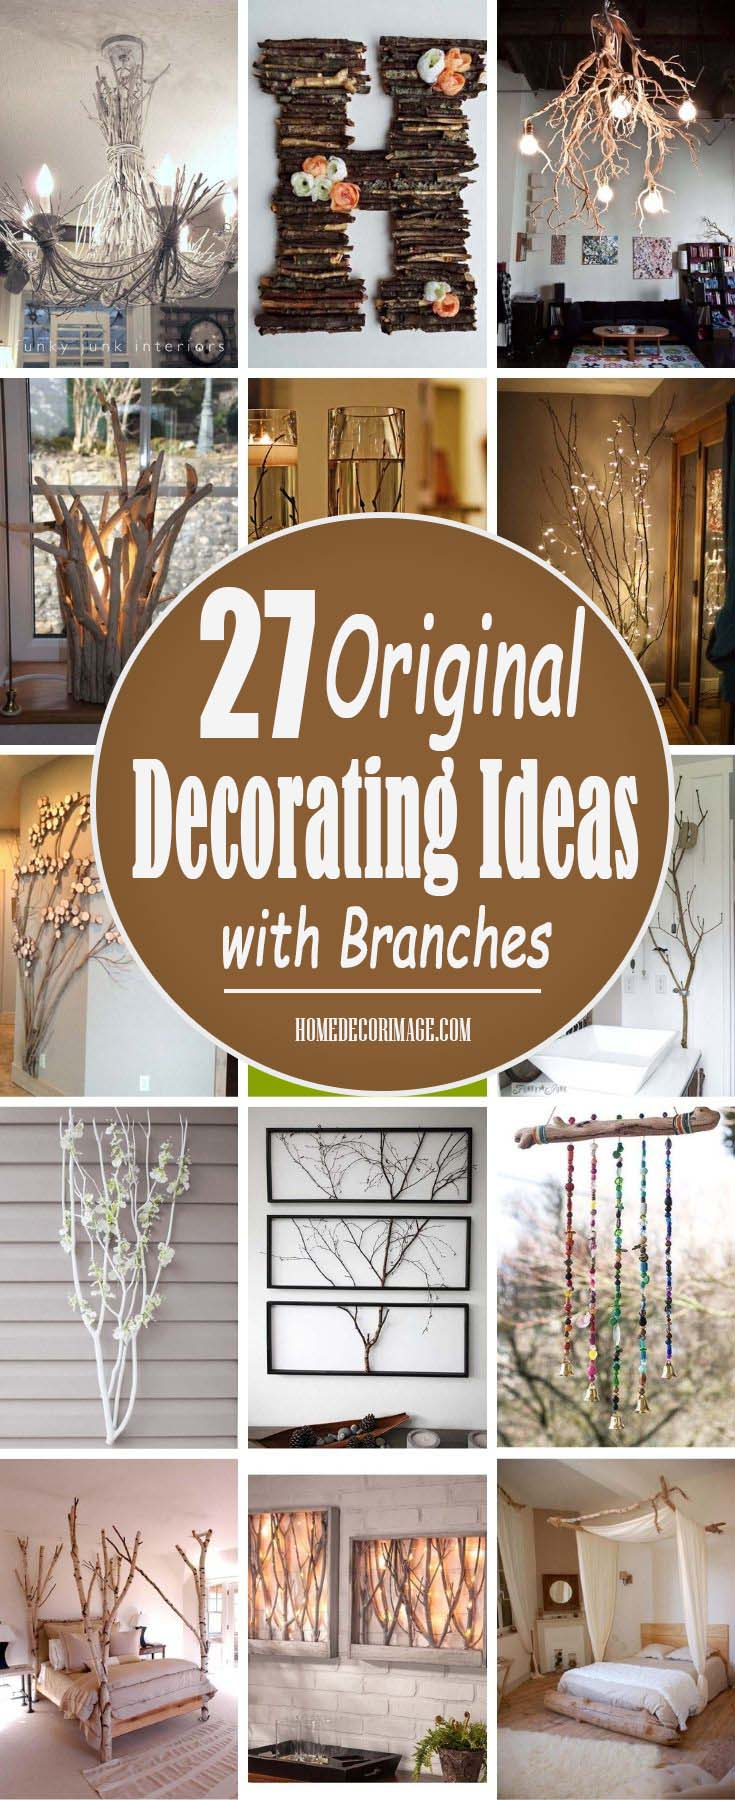 27 Original Decorating Ideas with Branches to Bring Nature in Your Home #decor #home #branches #homedecorimage